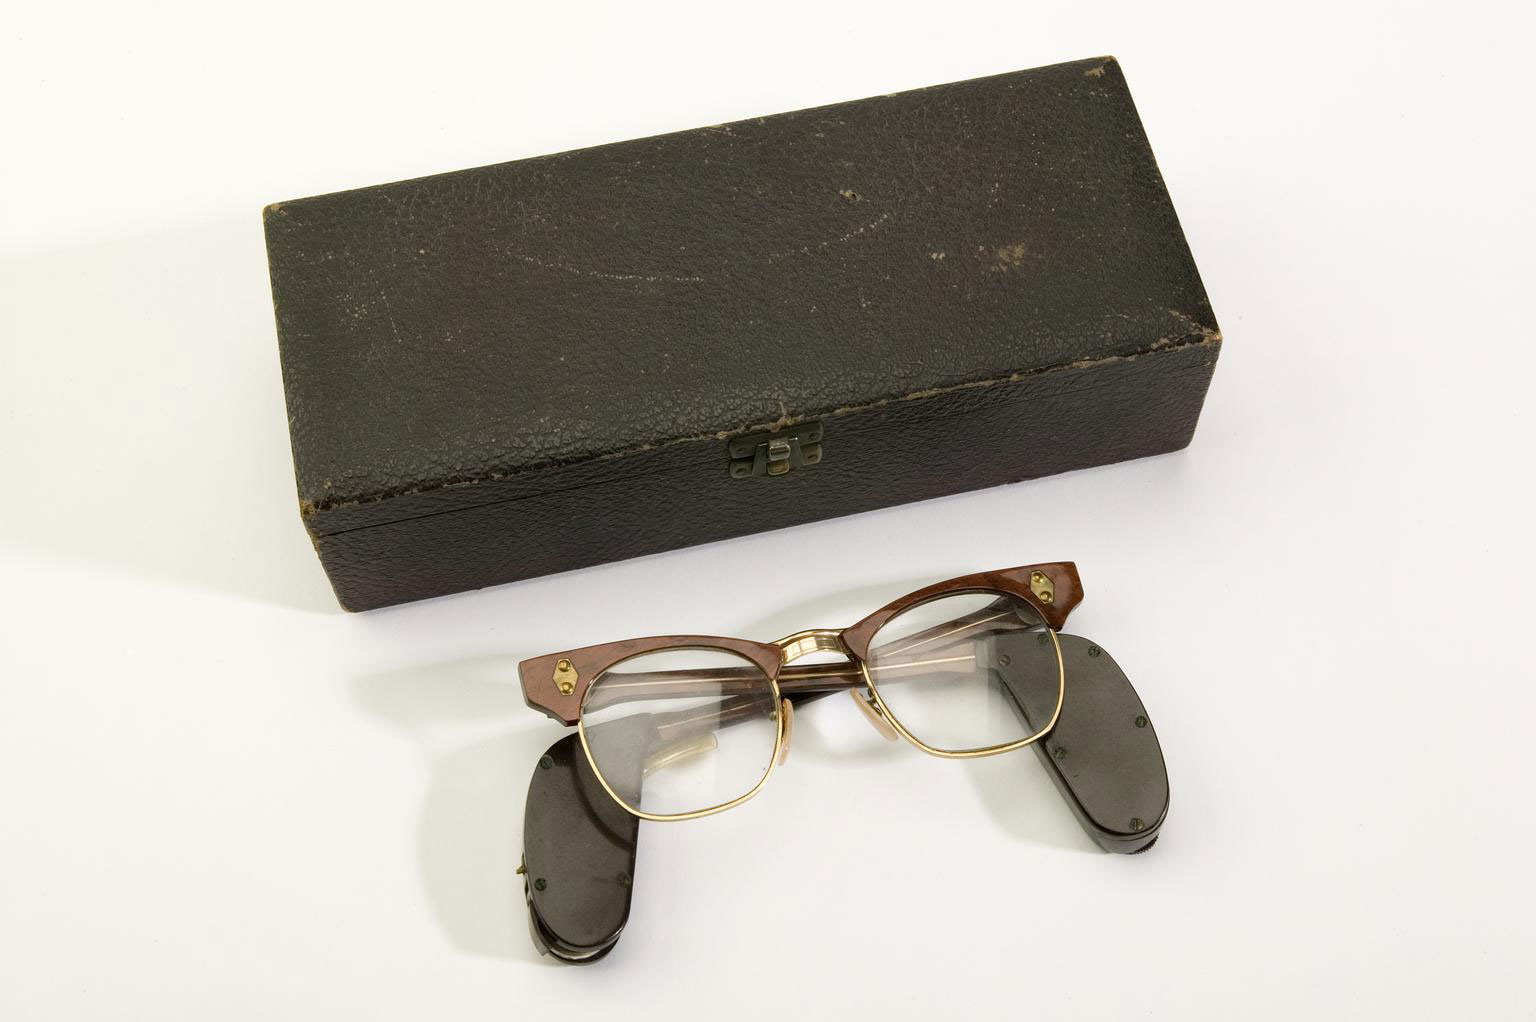 photograph of pair of spectacles with hearing aids attached to the arms next to a box